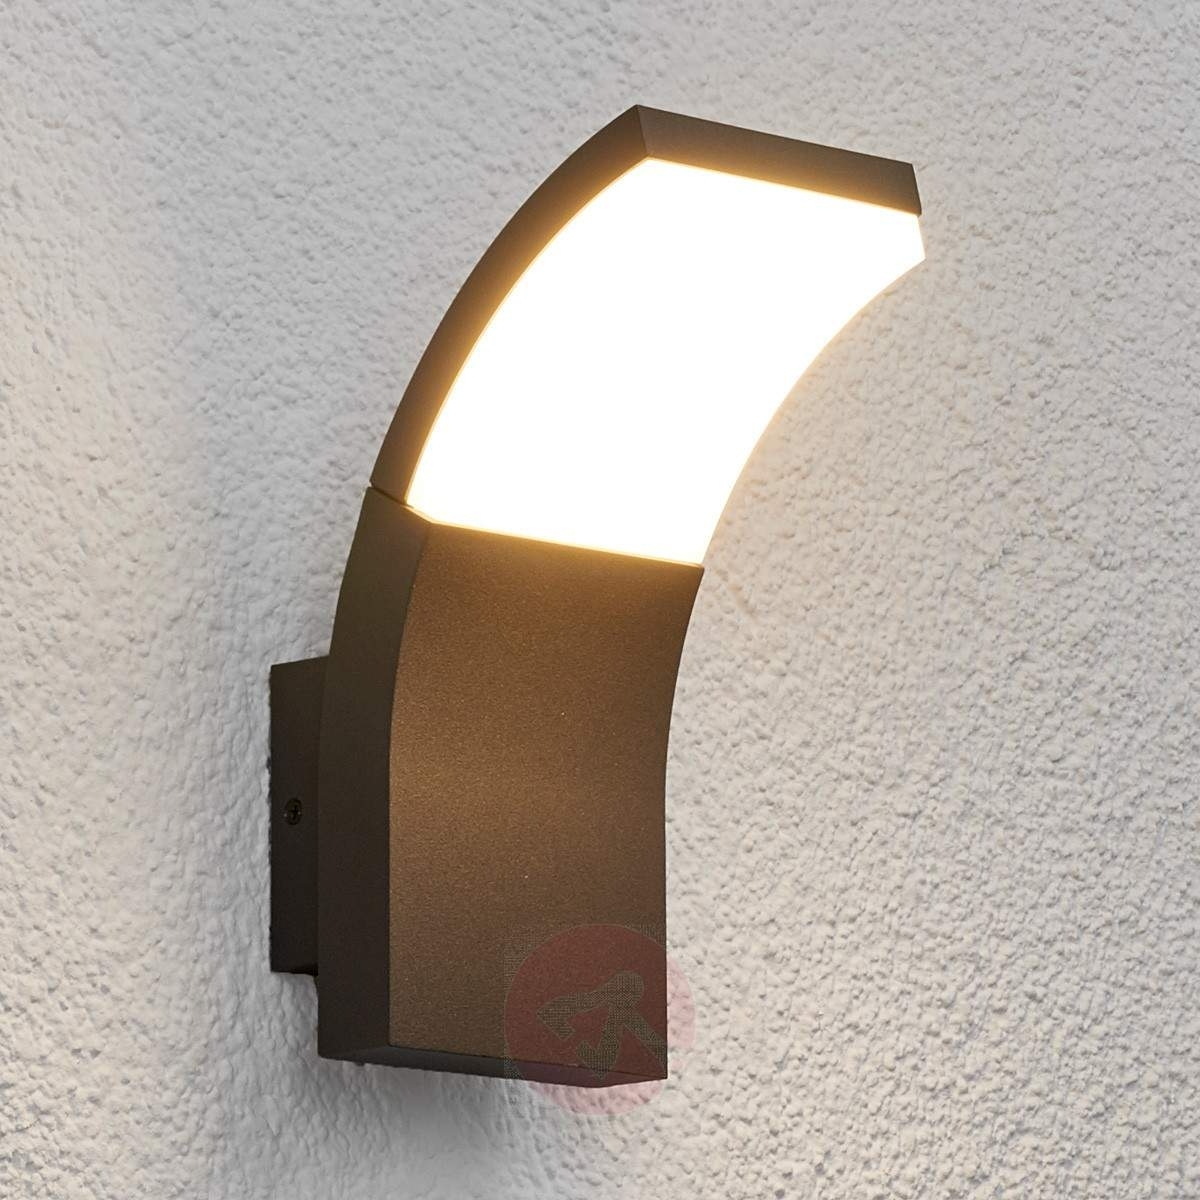 Led Outdoor Wall Lighting Inside Well Known Led Outdoor Wall Light Timm (View 2 of 20)